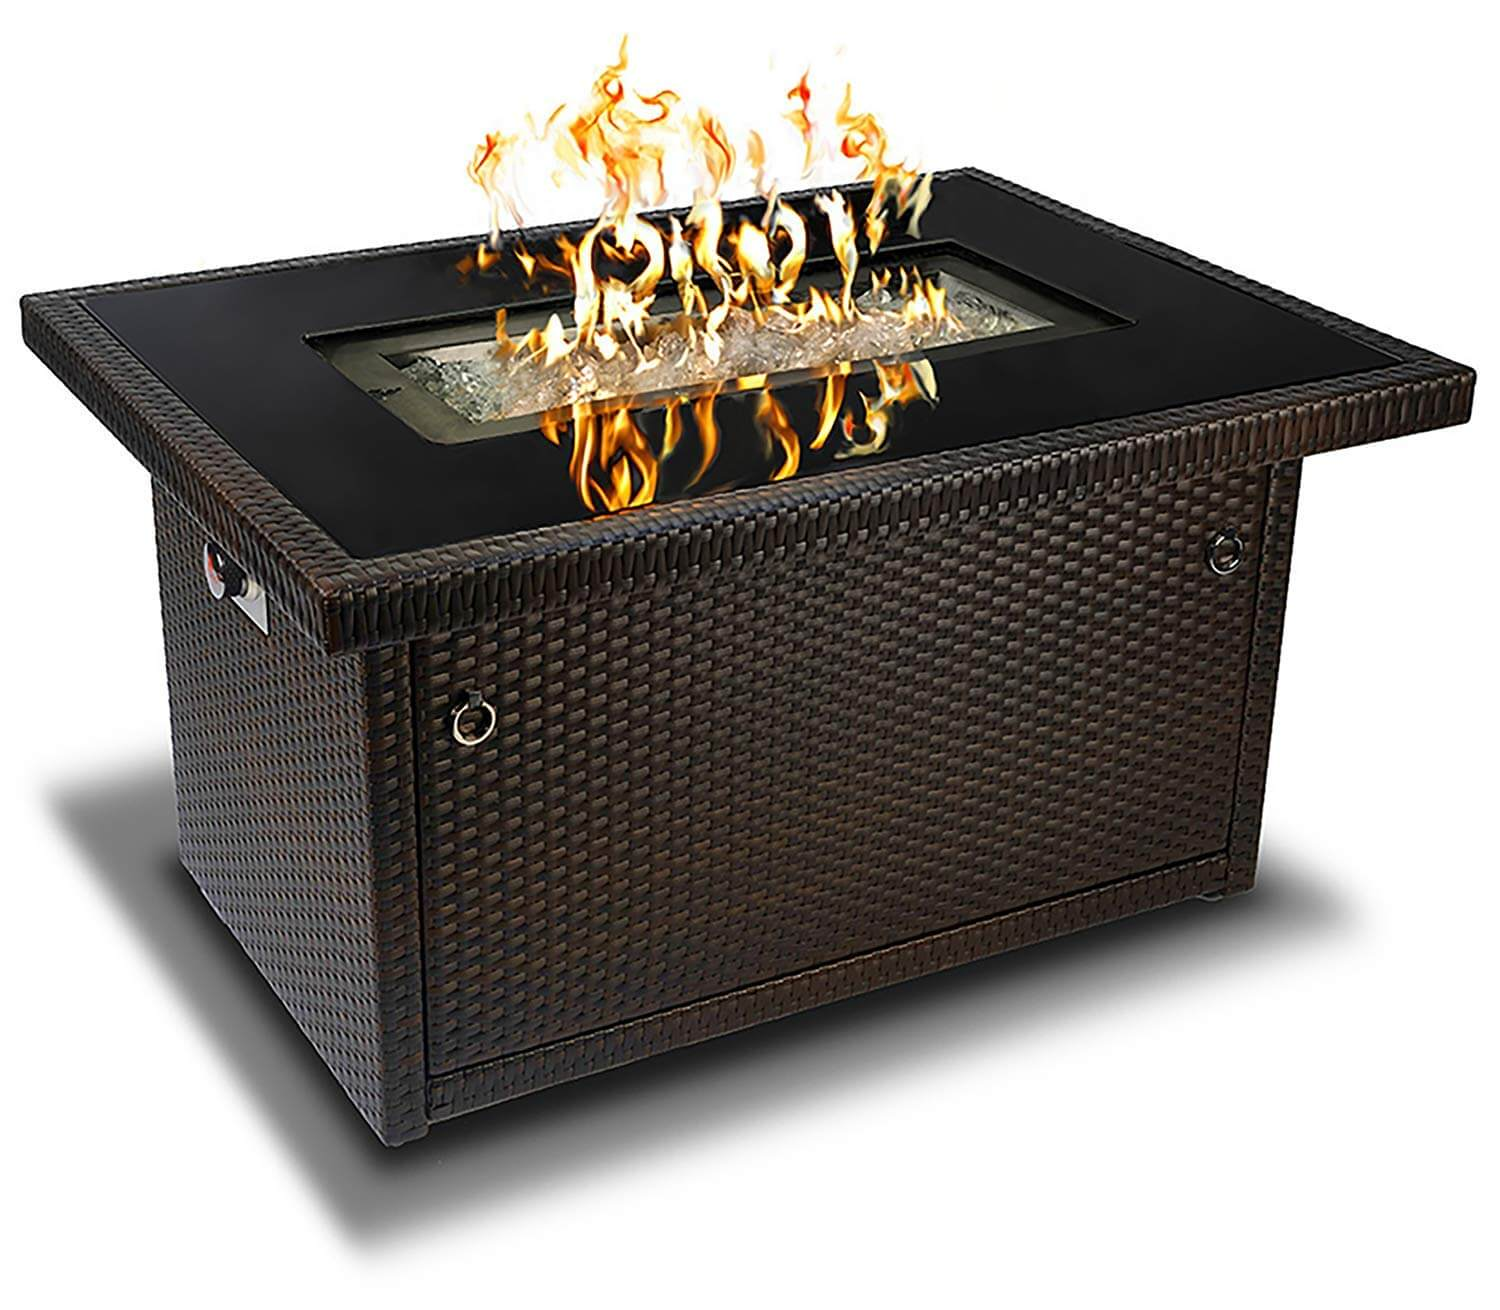 Outland Living Series 401 Brown 44-Inch Outdoor Propane Gas Fire Pit